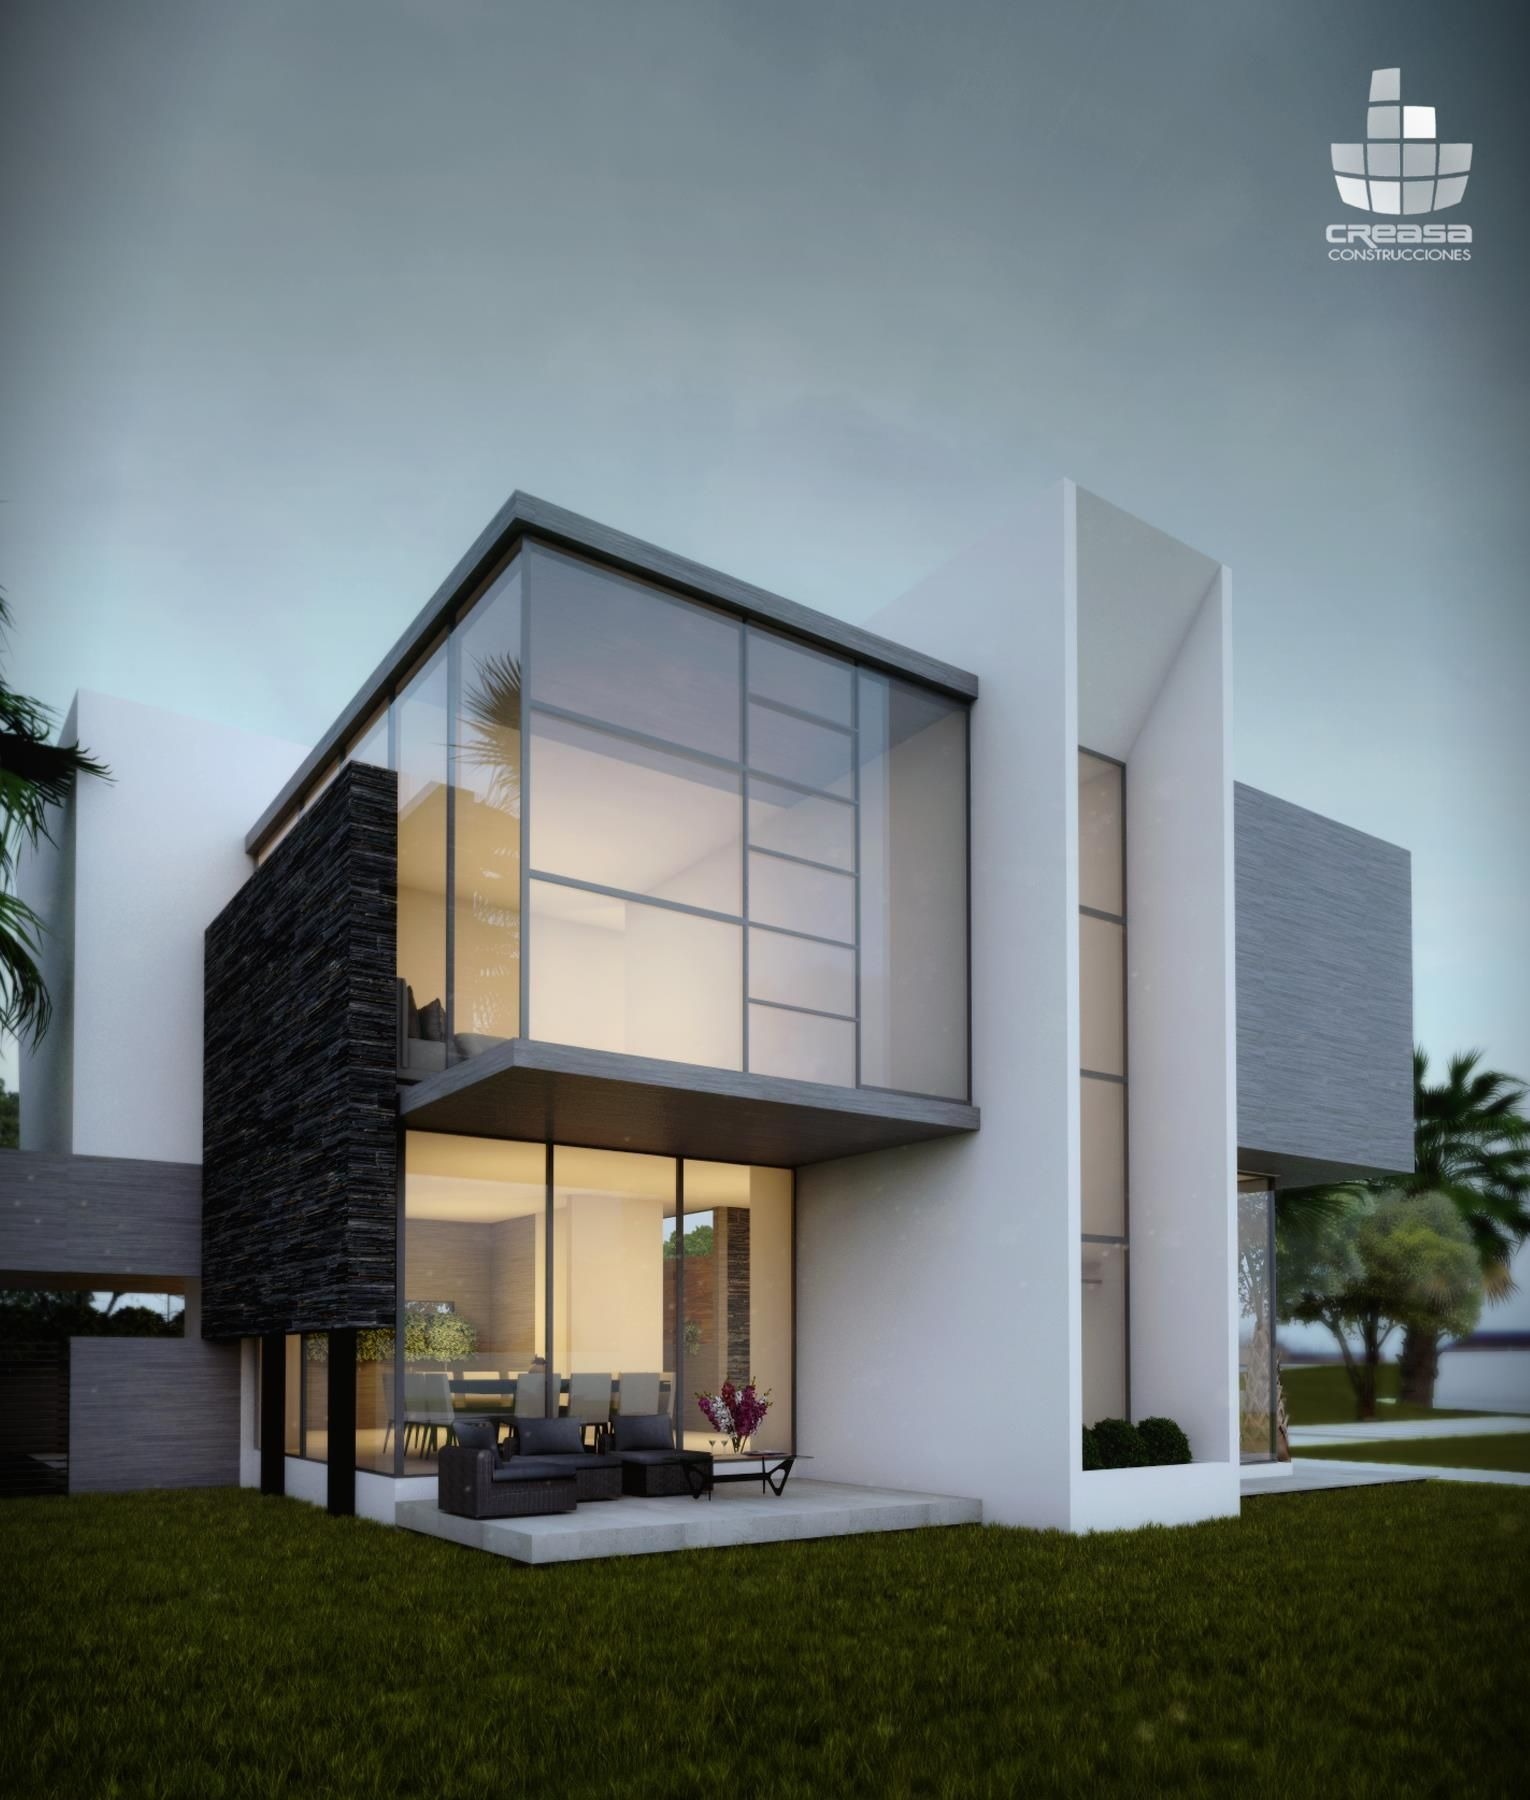 Creasa modern architecture pinterest villas house for Simple contemporary house